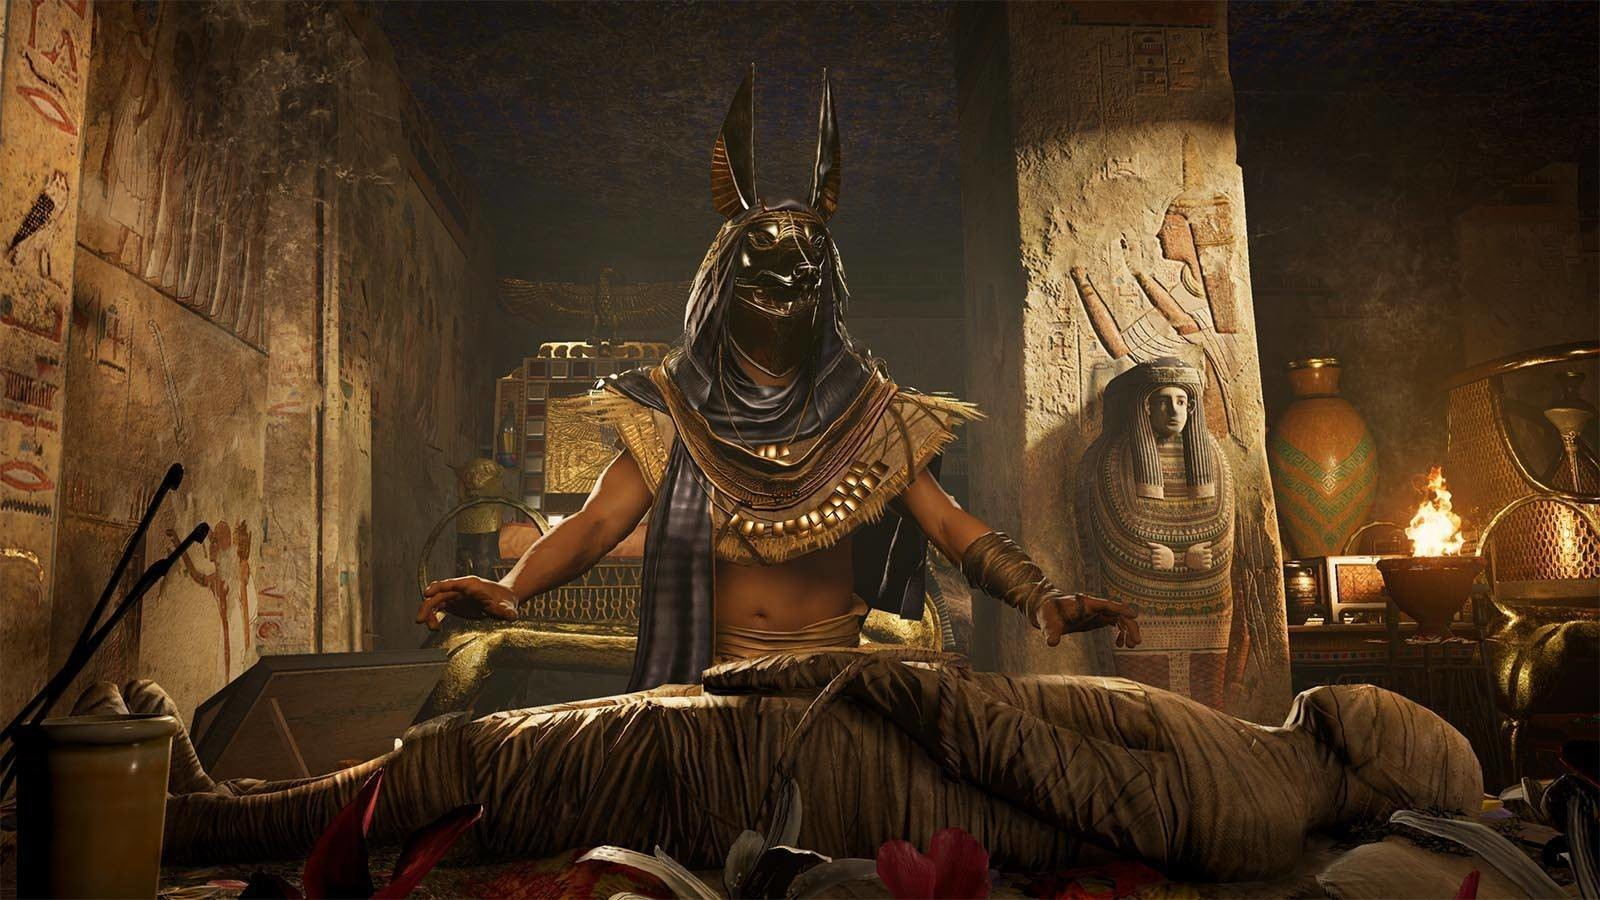 42 Uncovered Facts about King Tut